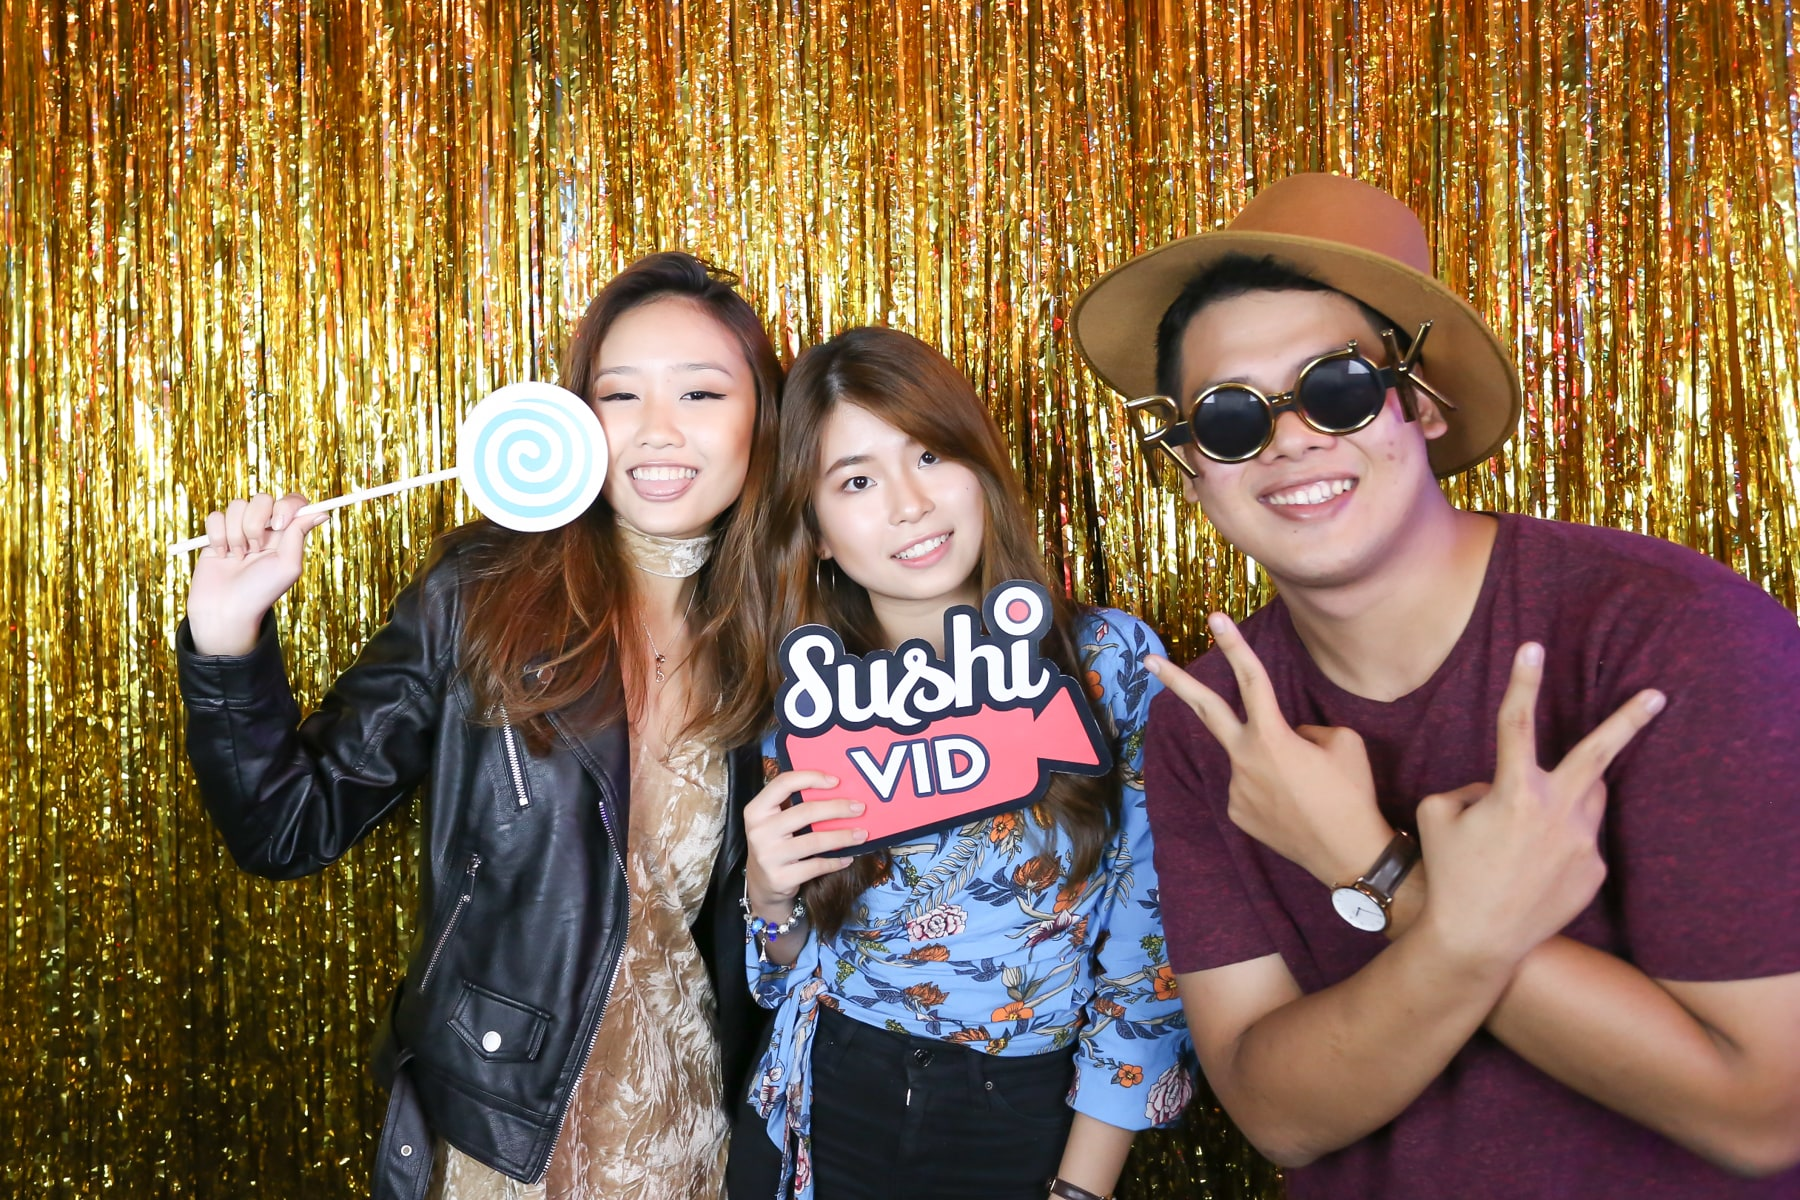 Sushivid+crunch+tagbooth+86